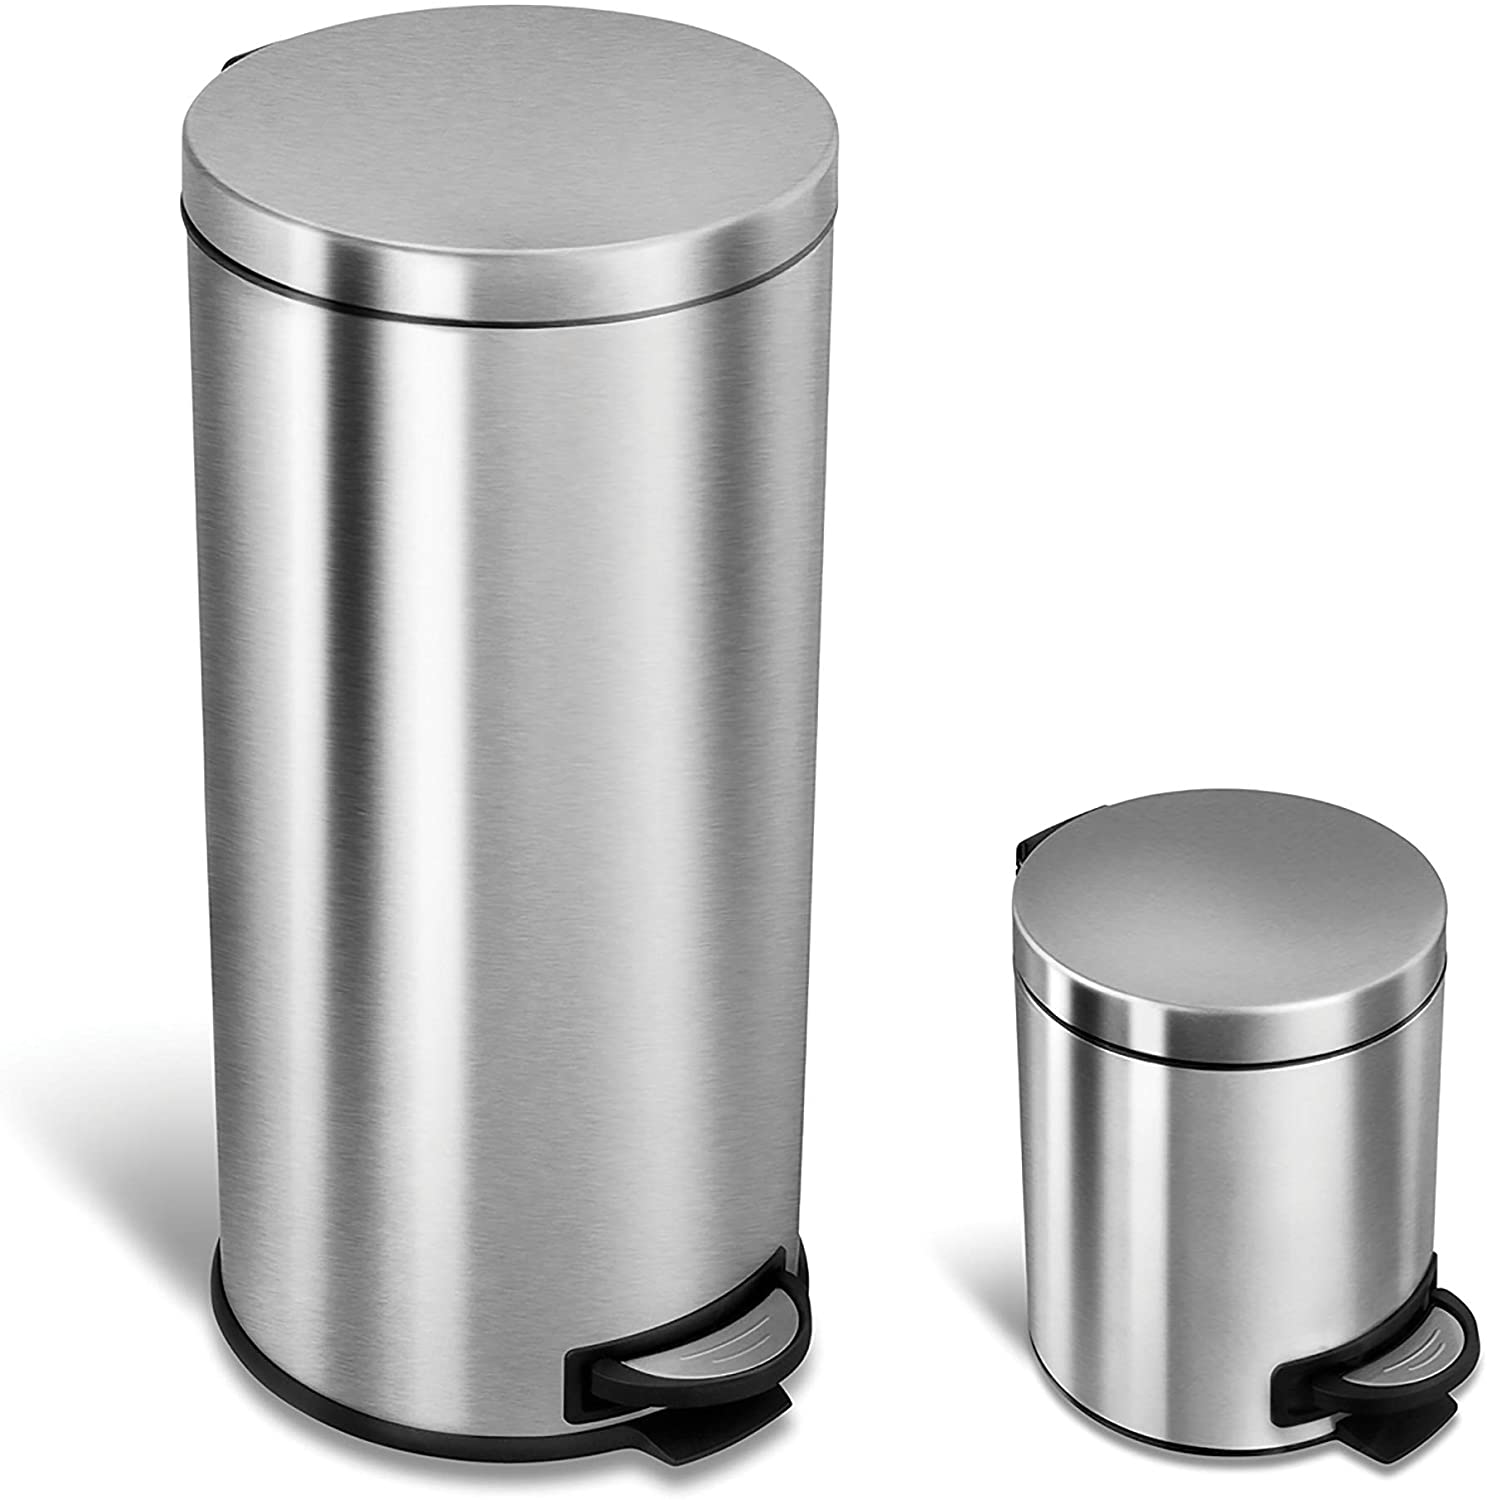 Ninestars Cb Sot 30 1 5 1 Step On Trash Can Combo Set 8 Gal 30l 1 2 Gal 5l Stainless Steel Base Round Stainless Steel Lid Home Kitchen